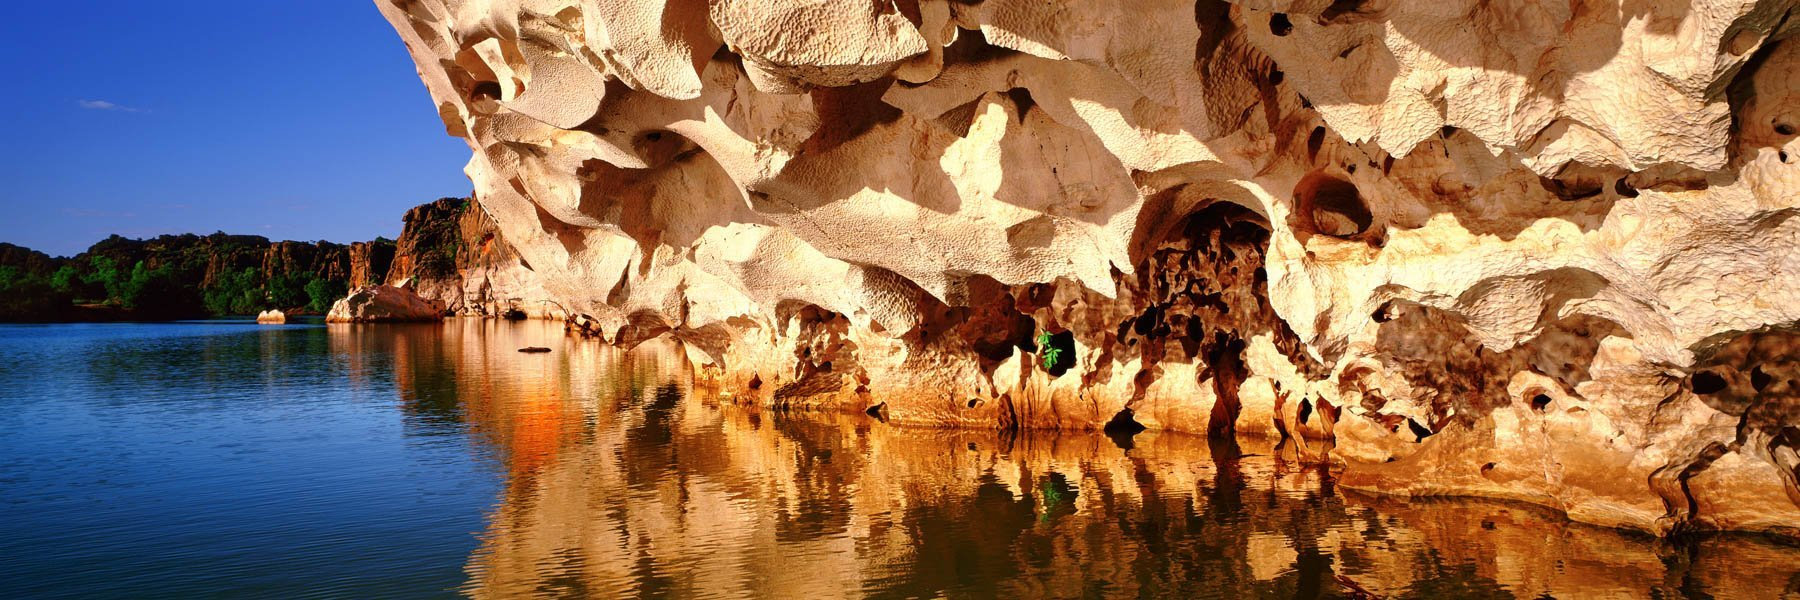 Wind and water erosion in the cliffs of Geike Gorge, on the Fitzroy River, The Kimbereys, Western Australia.